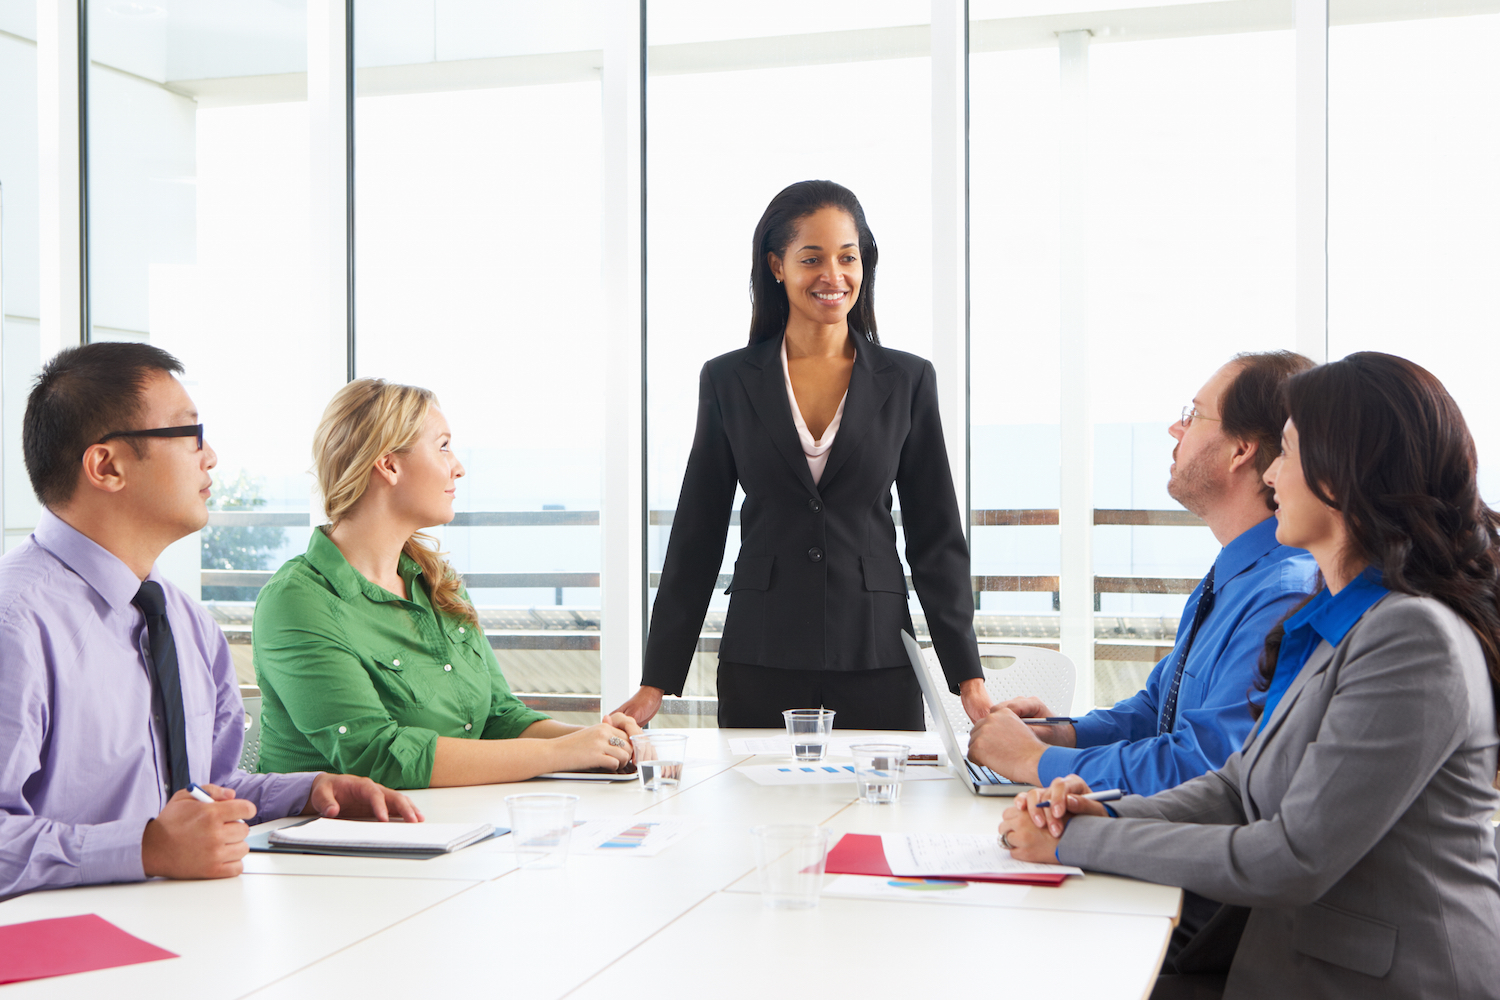 Leadership Skills for Supervisors – Communication, Coaching, and Conflict